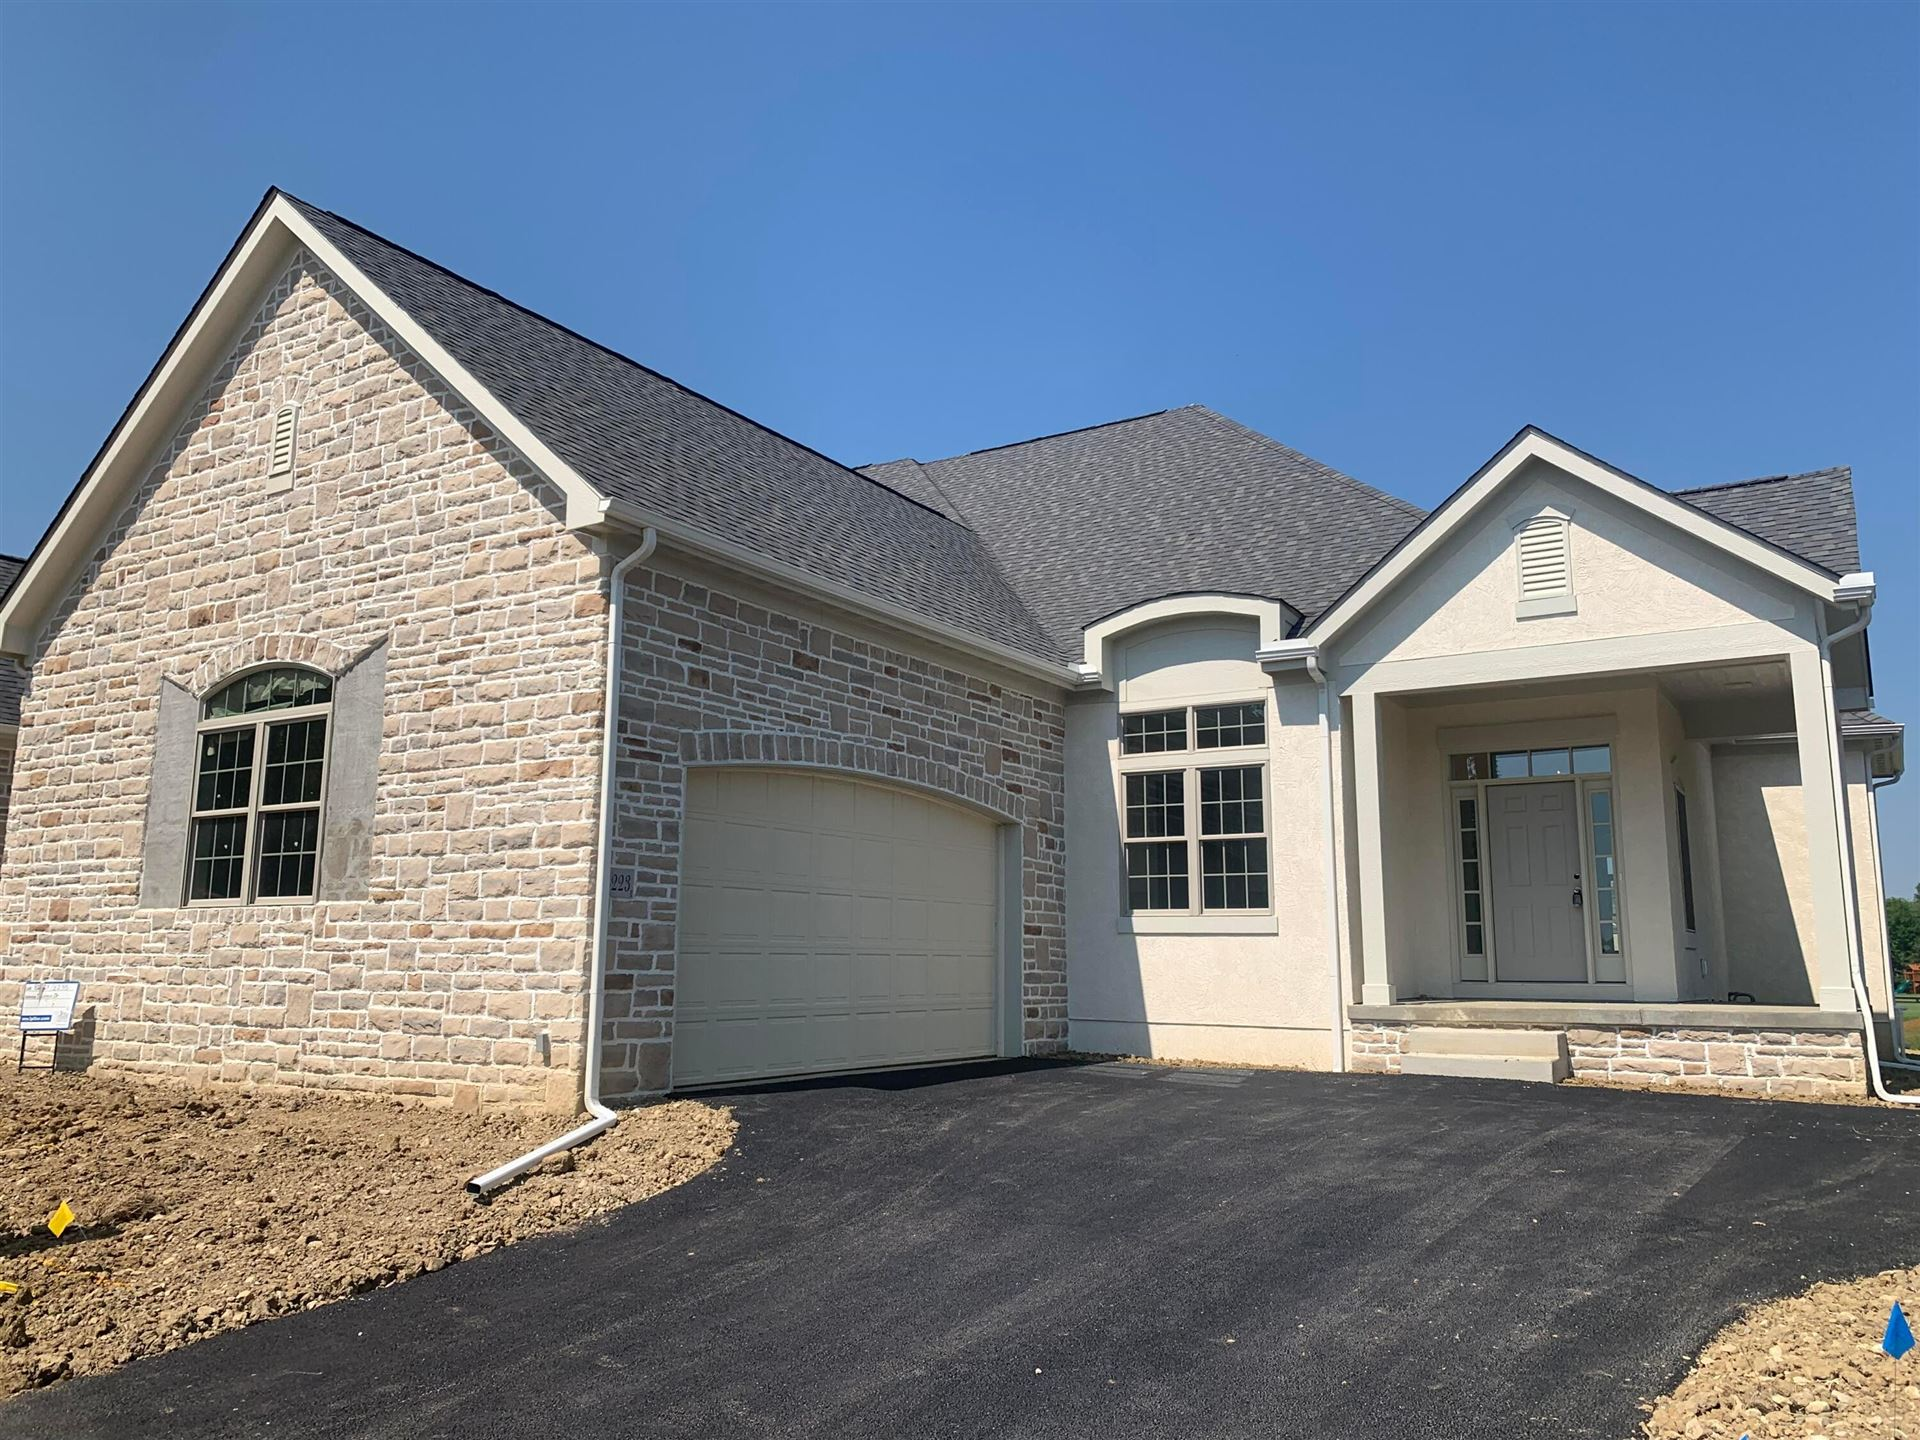 Photo of 8223 Dolman Drive, Powell, OH 43065 (MLS # 221005118)